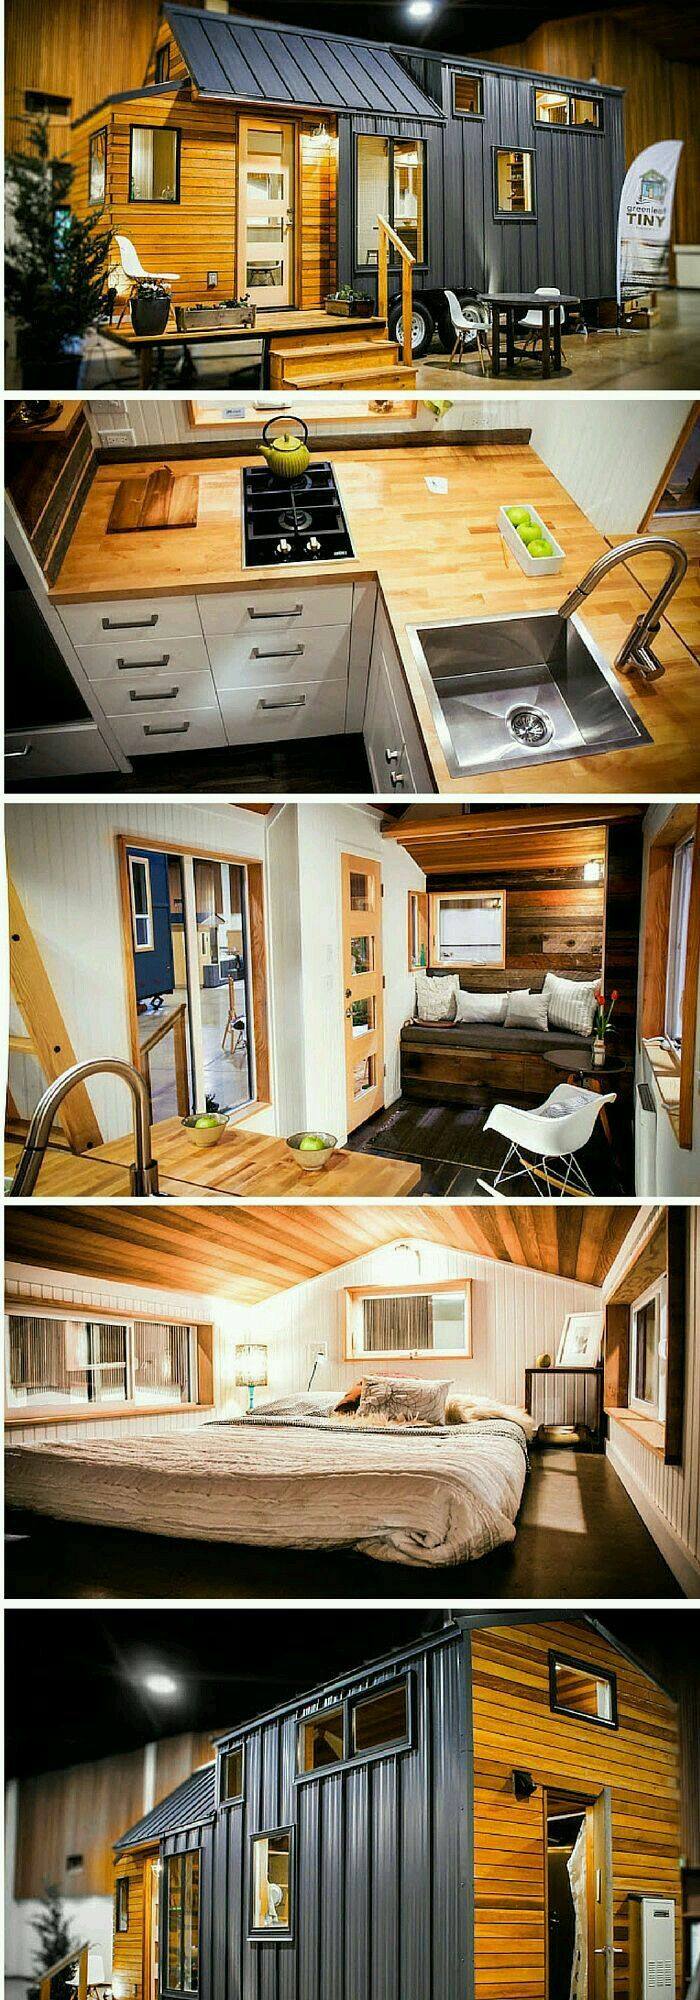 Tiny House has modern features all over this